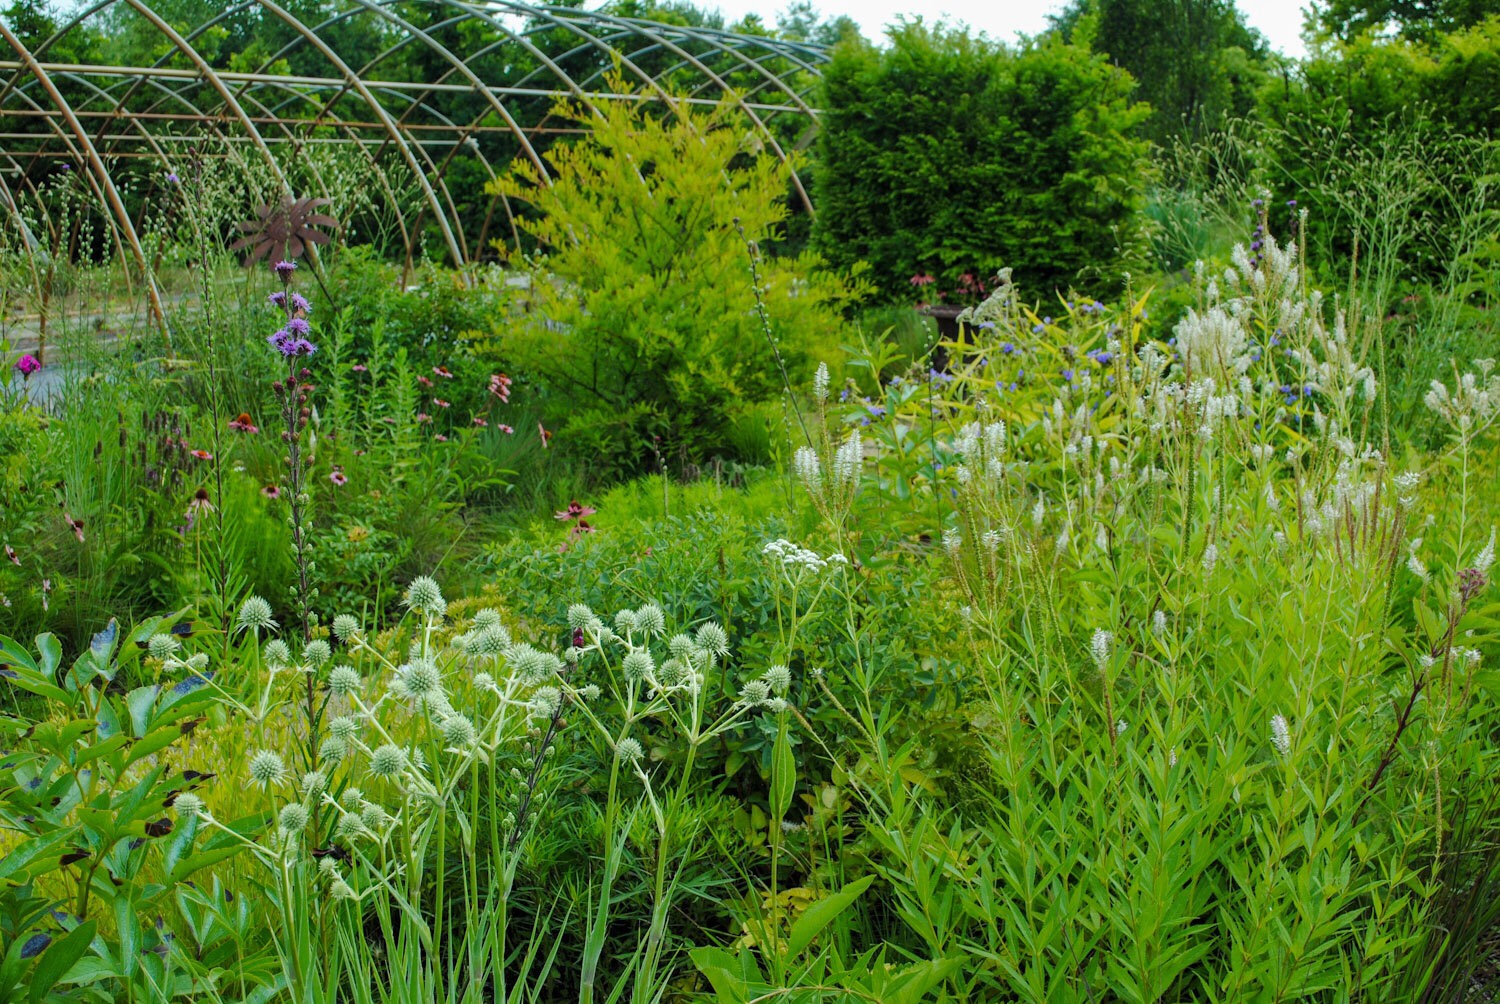 This wild and fancy-free patch called Trudy's Garden was tucked in between polyhouse frames.